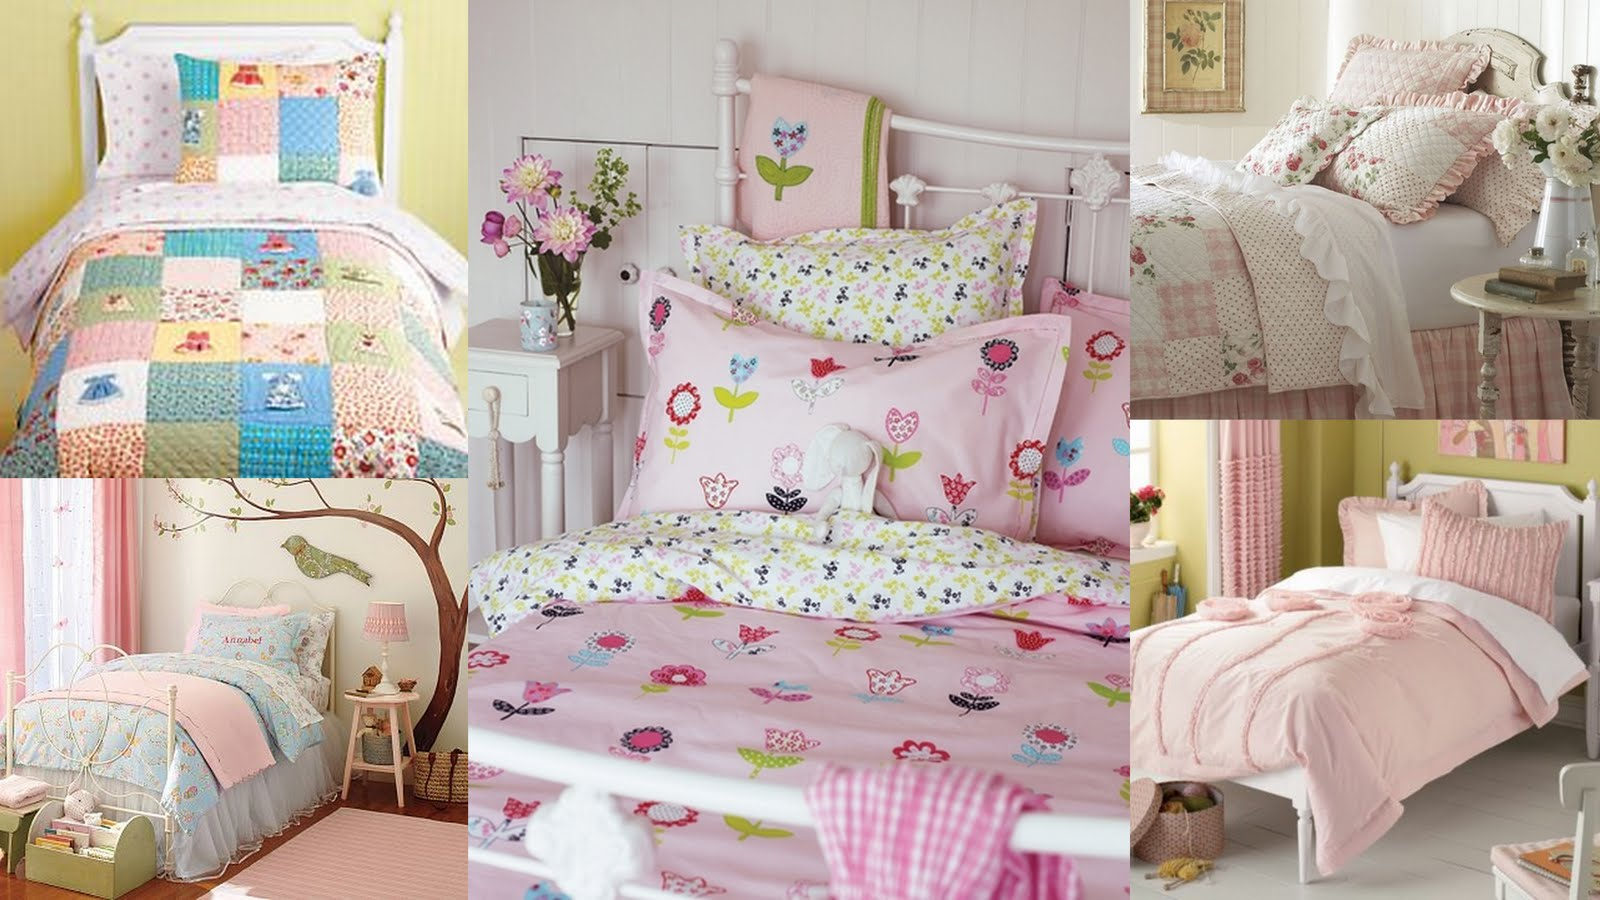 House on Ashwell lane: Bedding to suit your little girl's personality